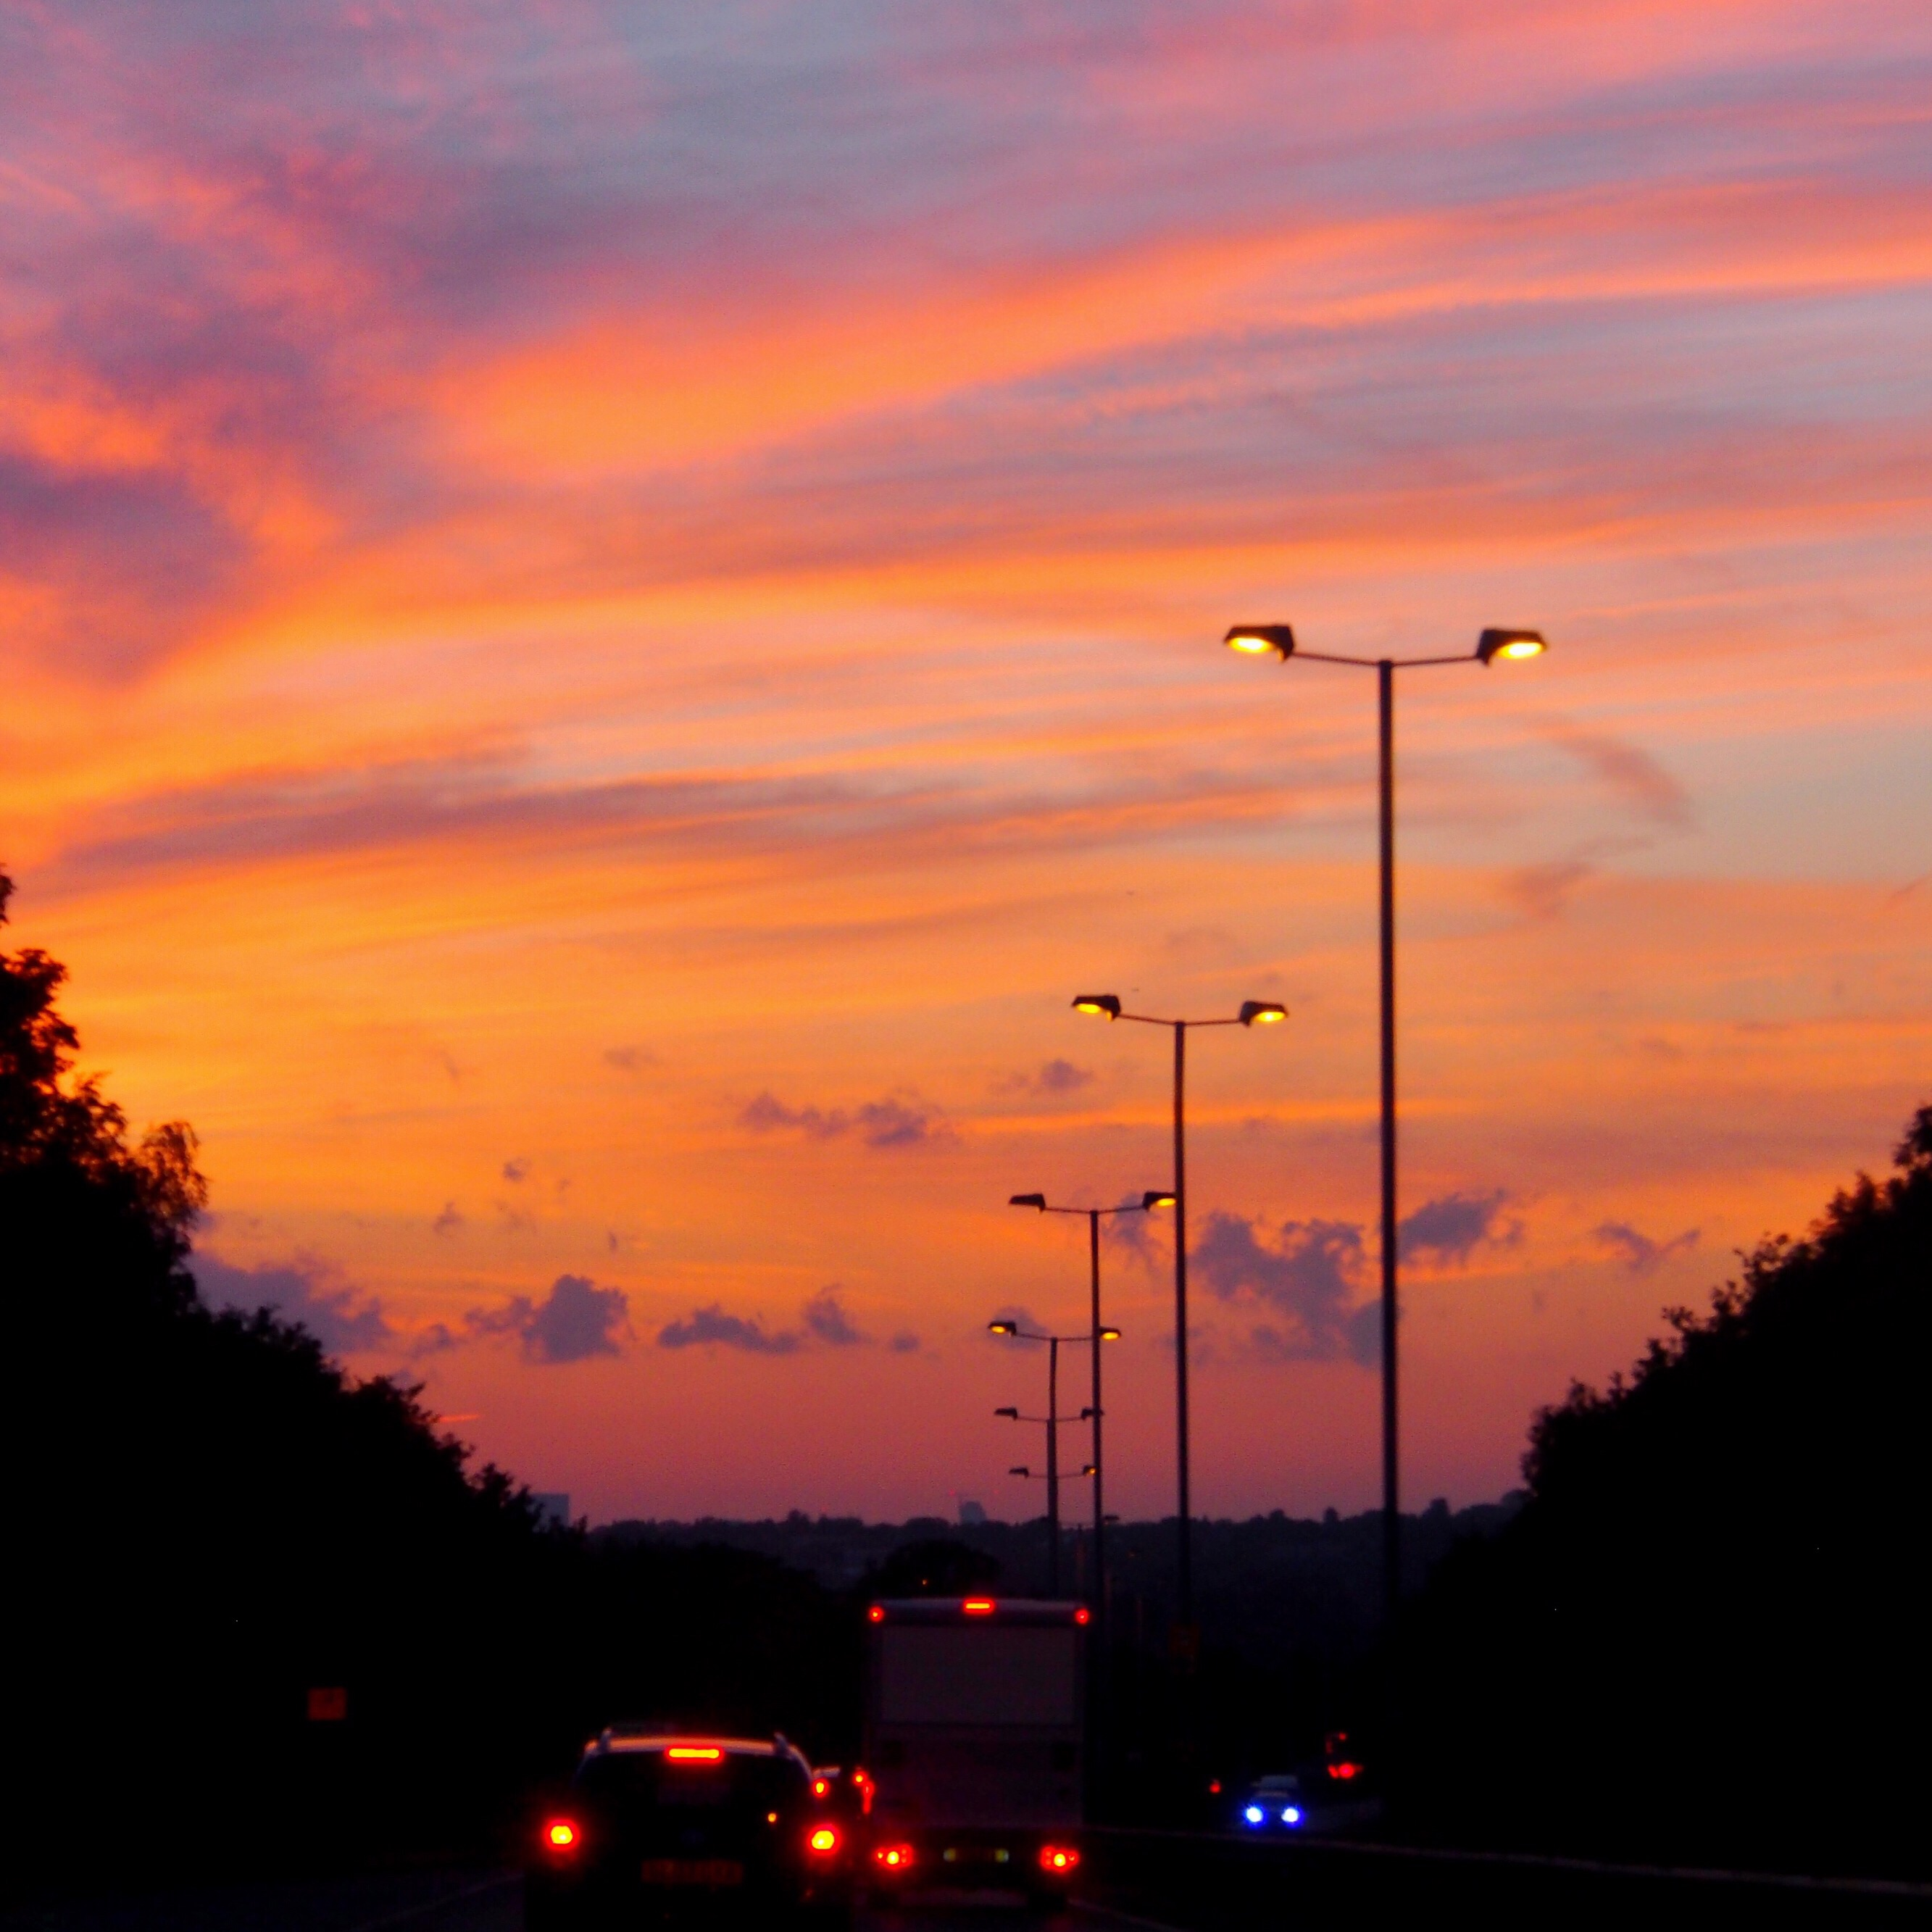 Pink and purple sunset driving back into London | Conversation Pieces